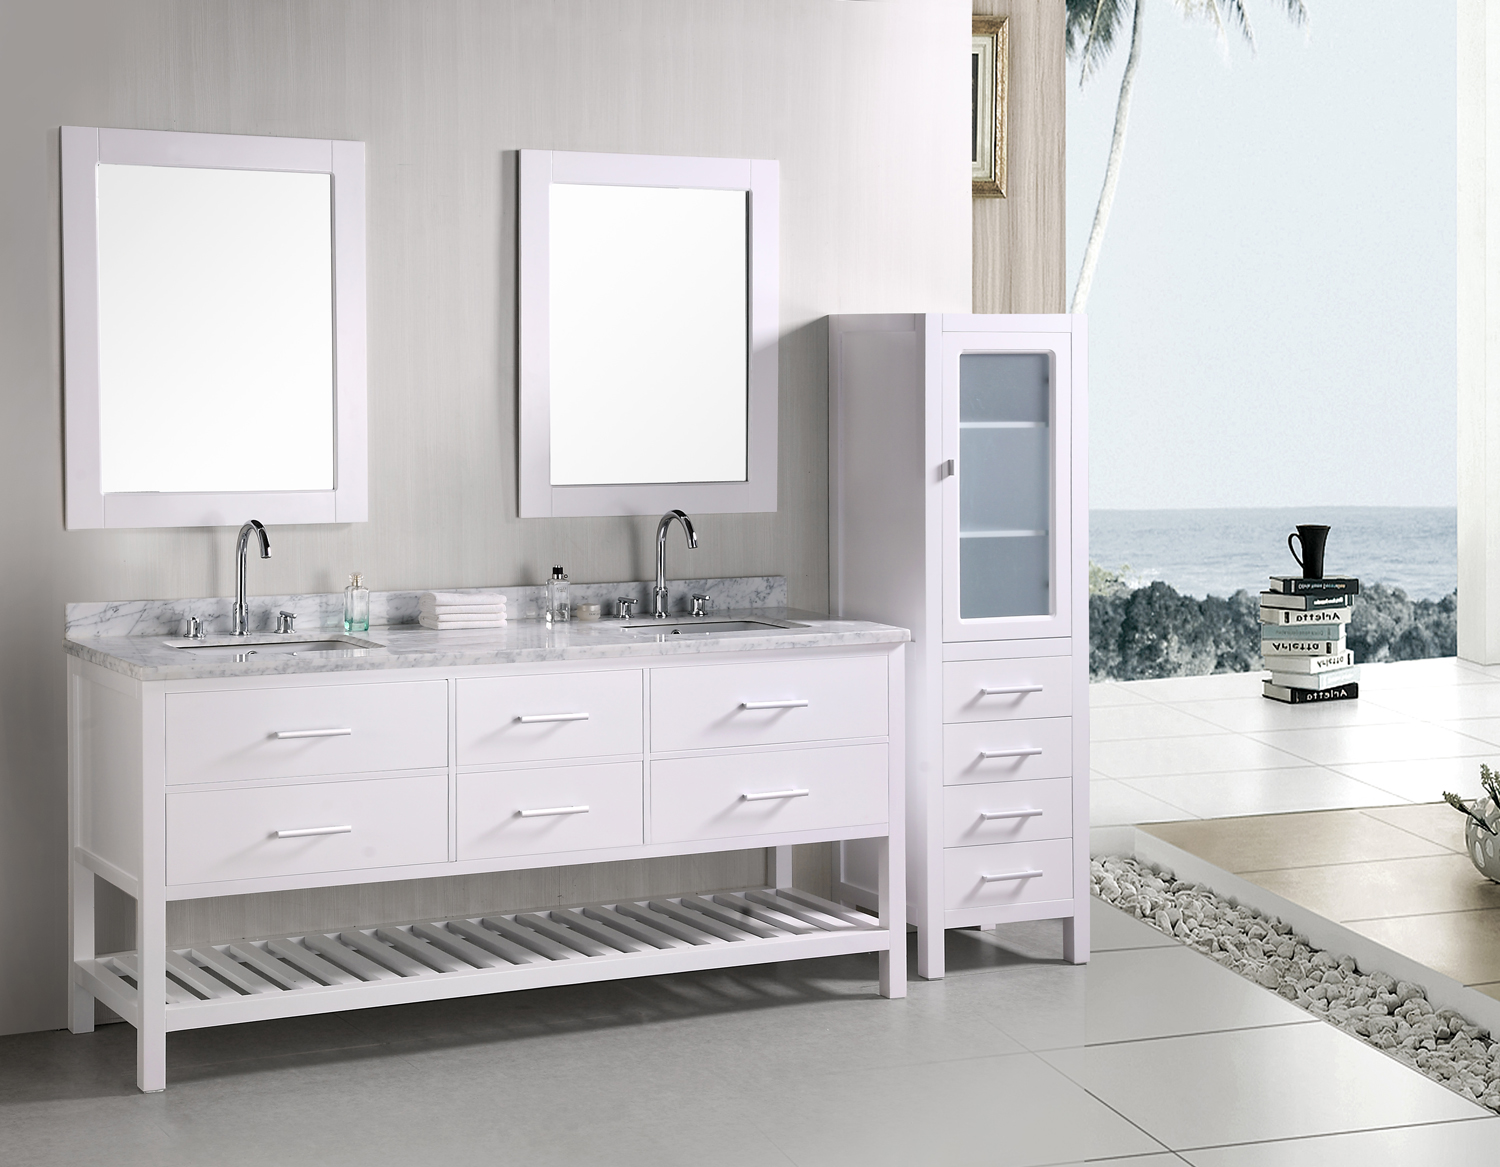 72inch brixton vanity brixton console vanity console for Bathroom toilet and sink set